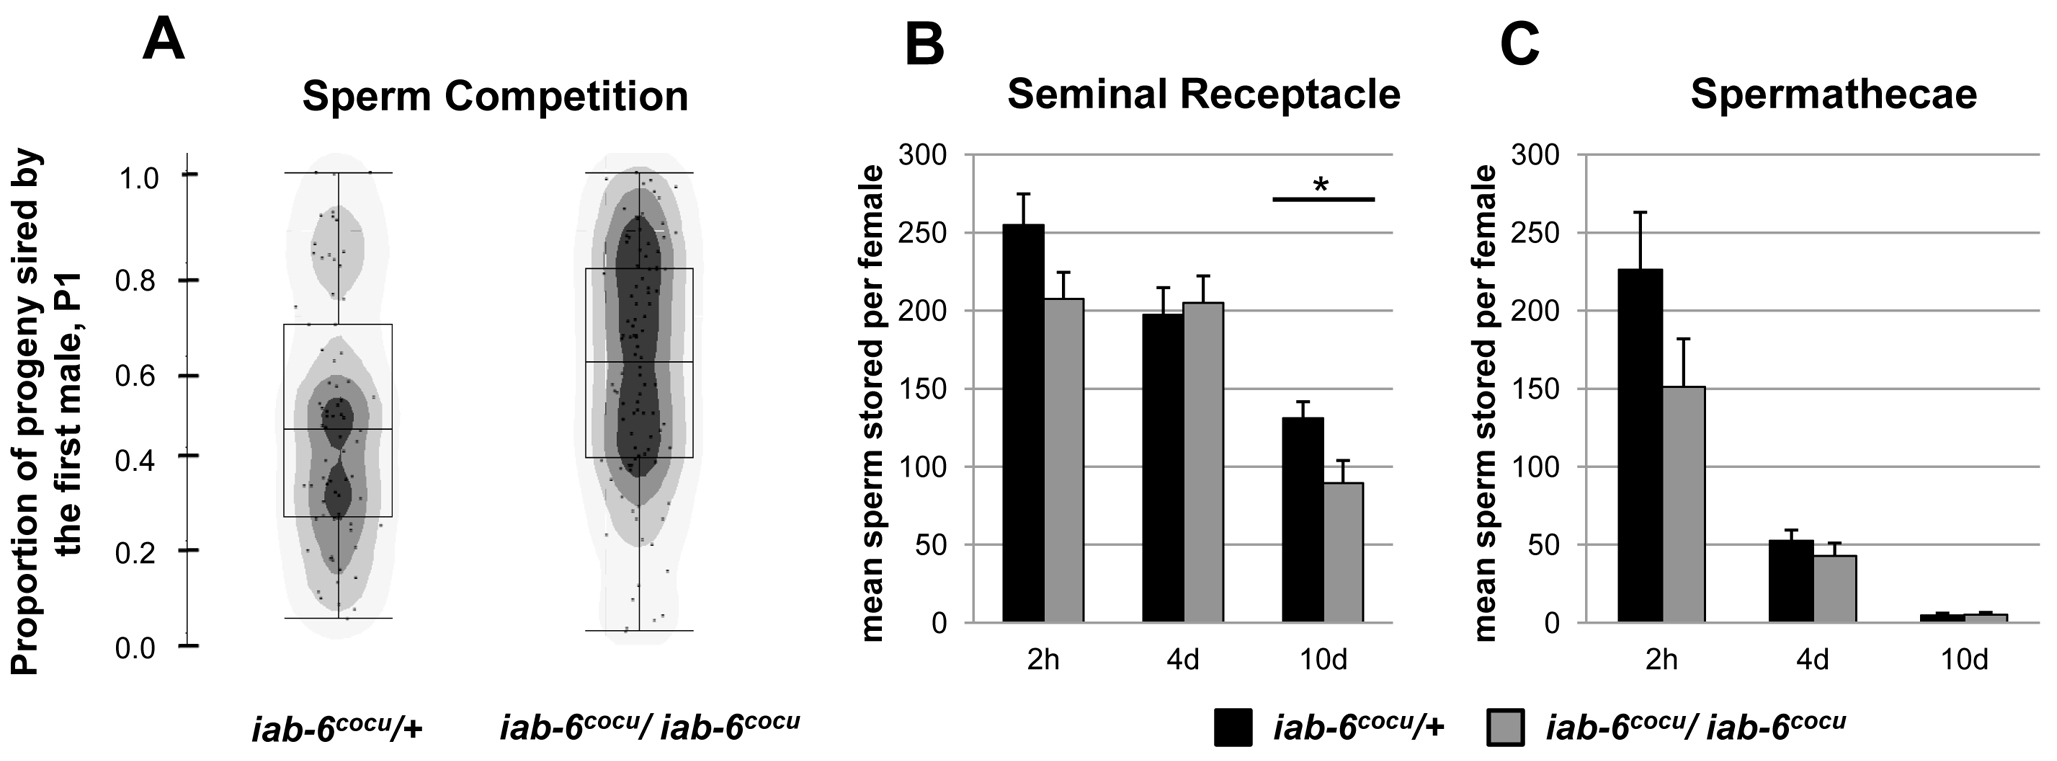 Sperm storage and use by mates of <i>iab-6<sup>cocu</sup></i> or control males.